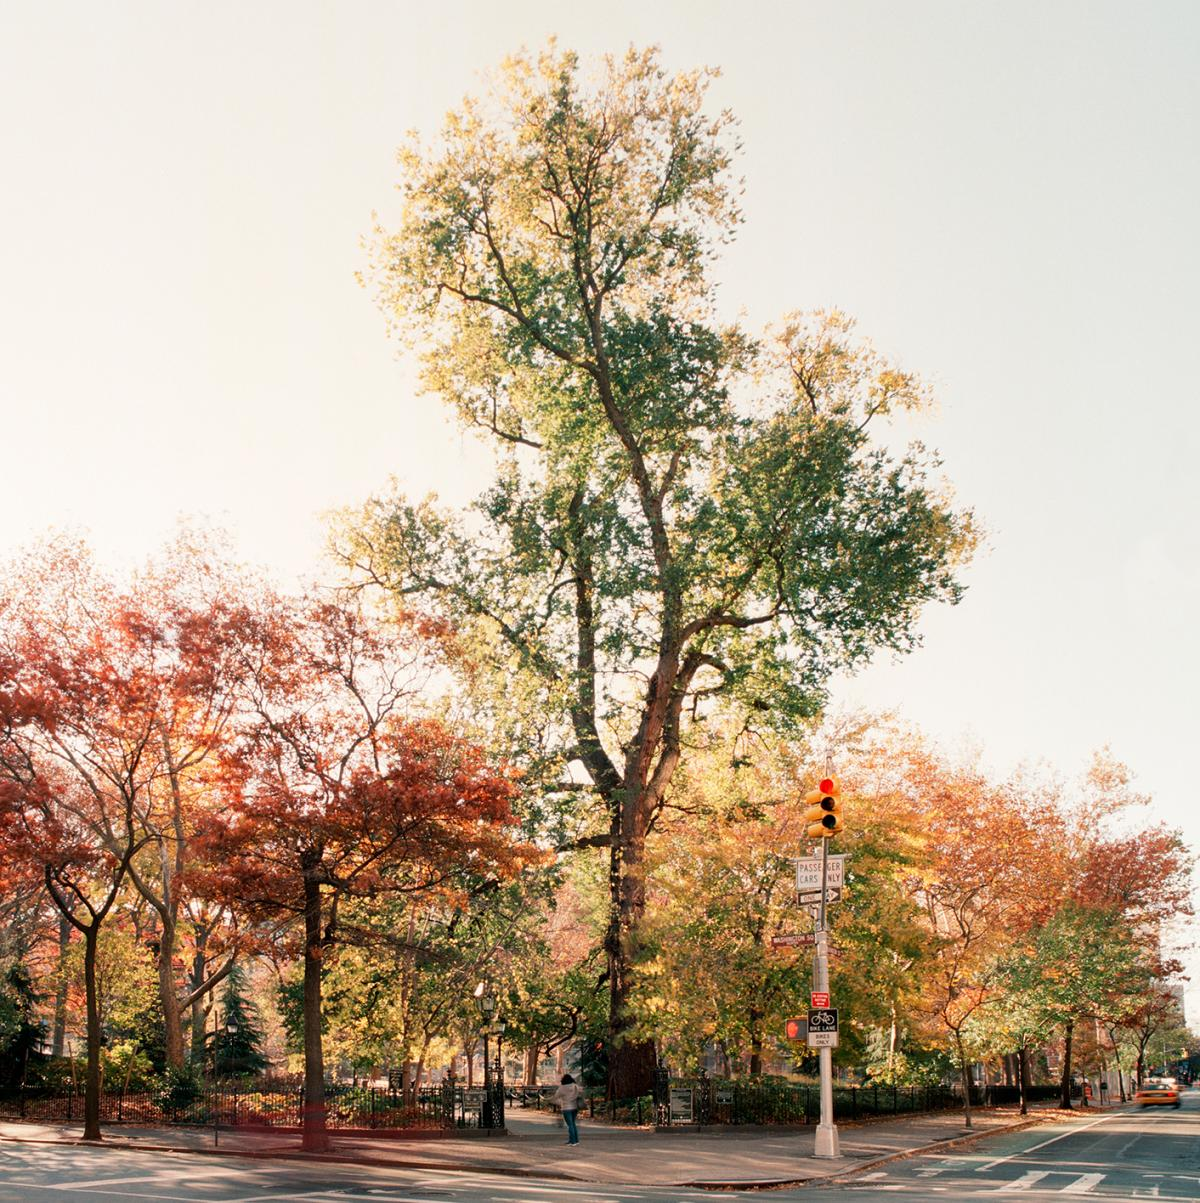 English elm in Washington Square Park, Manhattan, taken on Nov. 18, 2011. The tree had a diameter of 65 inches and an estimated height of 110 feet. The tree was about 220 years old.